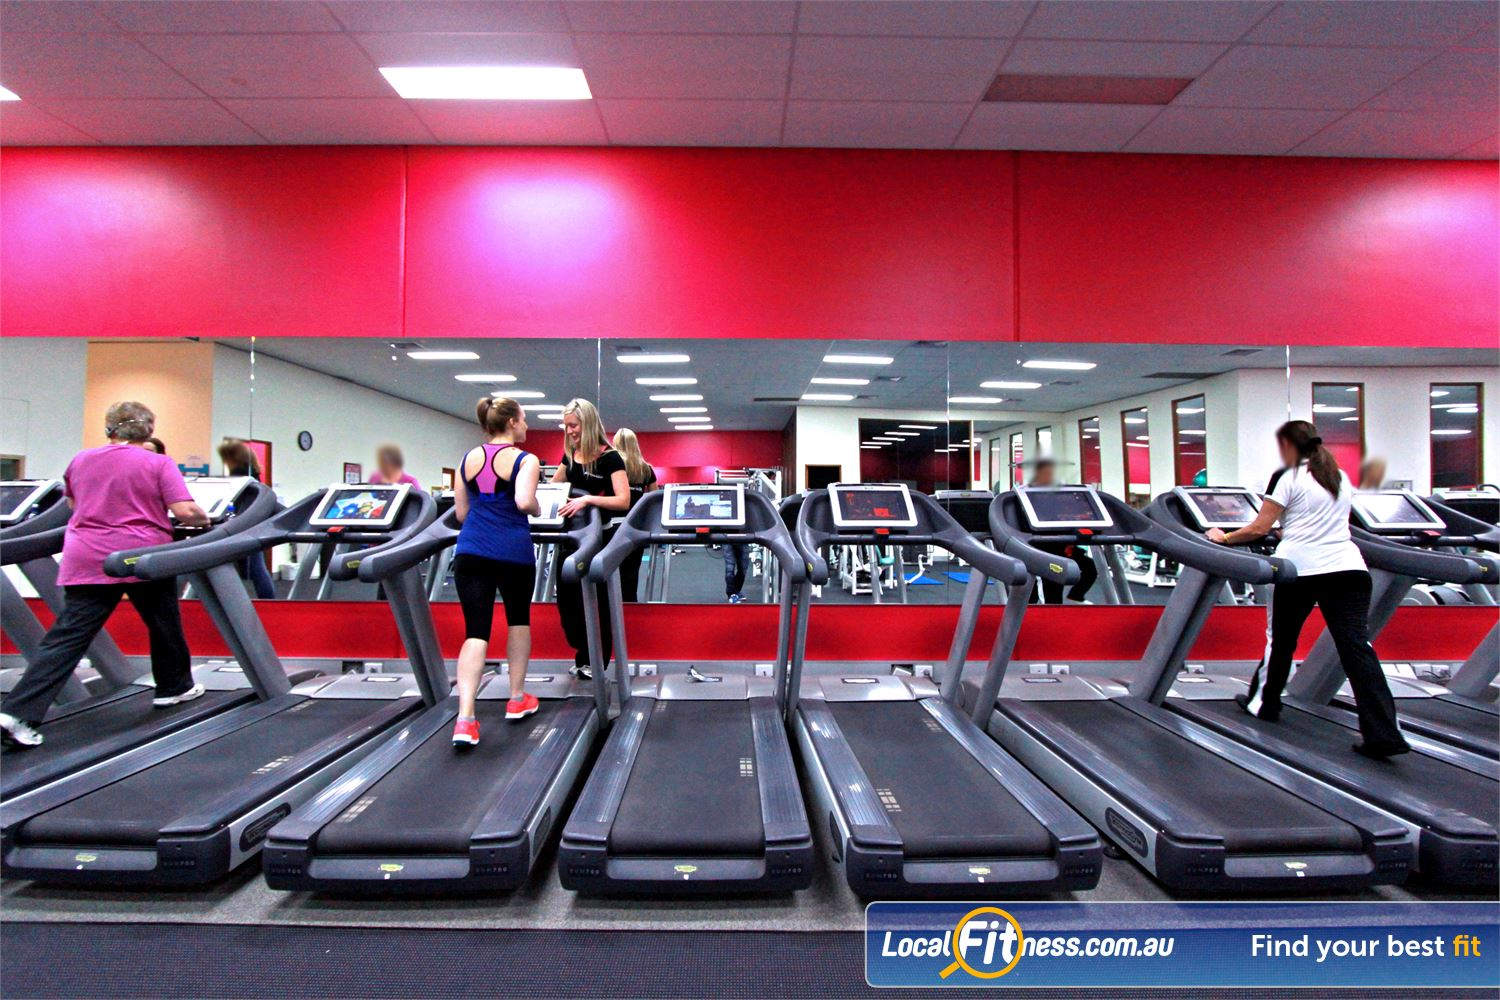 Fernwood Fitness Near Upper Ferntree Gully Fernwood women's Ferntree Gully gym provides personal entertainment screens on our cardio.